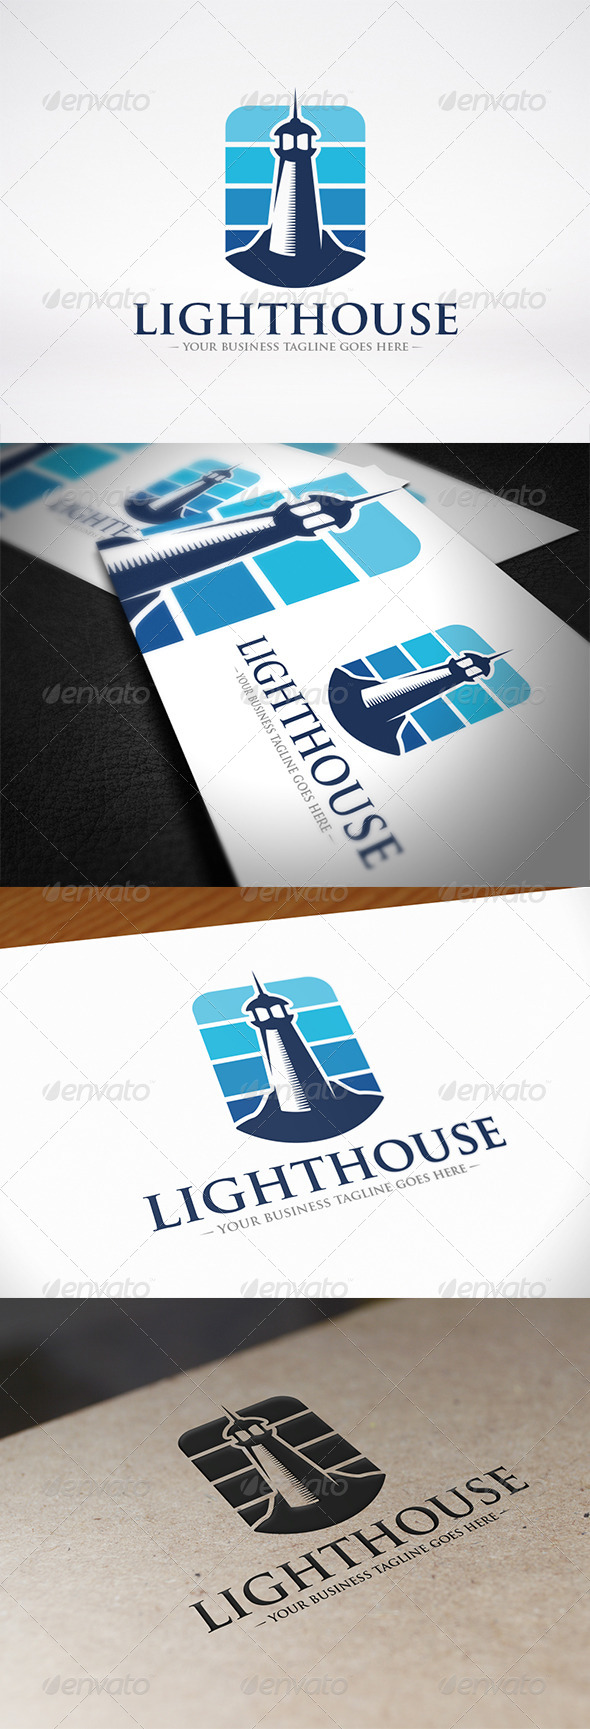 Lighthouse Logo Identity - Buildings Logo Templates